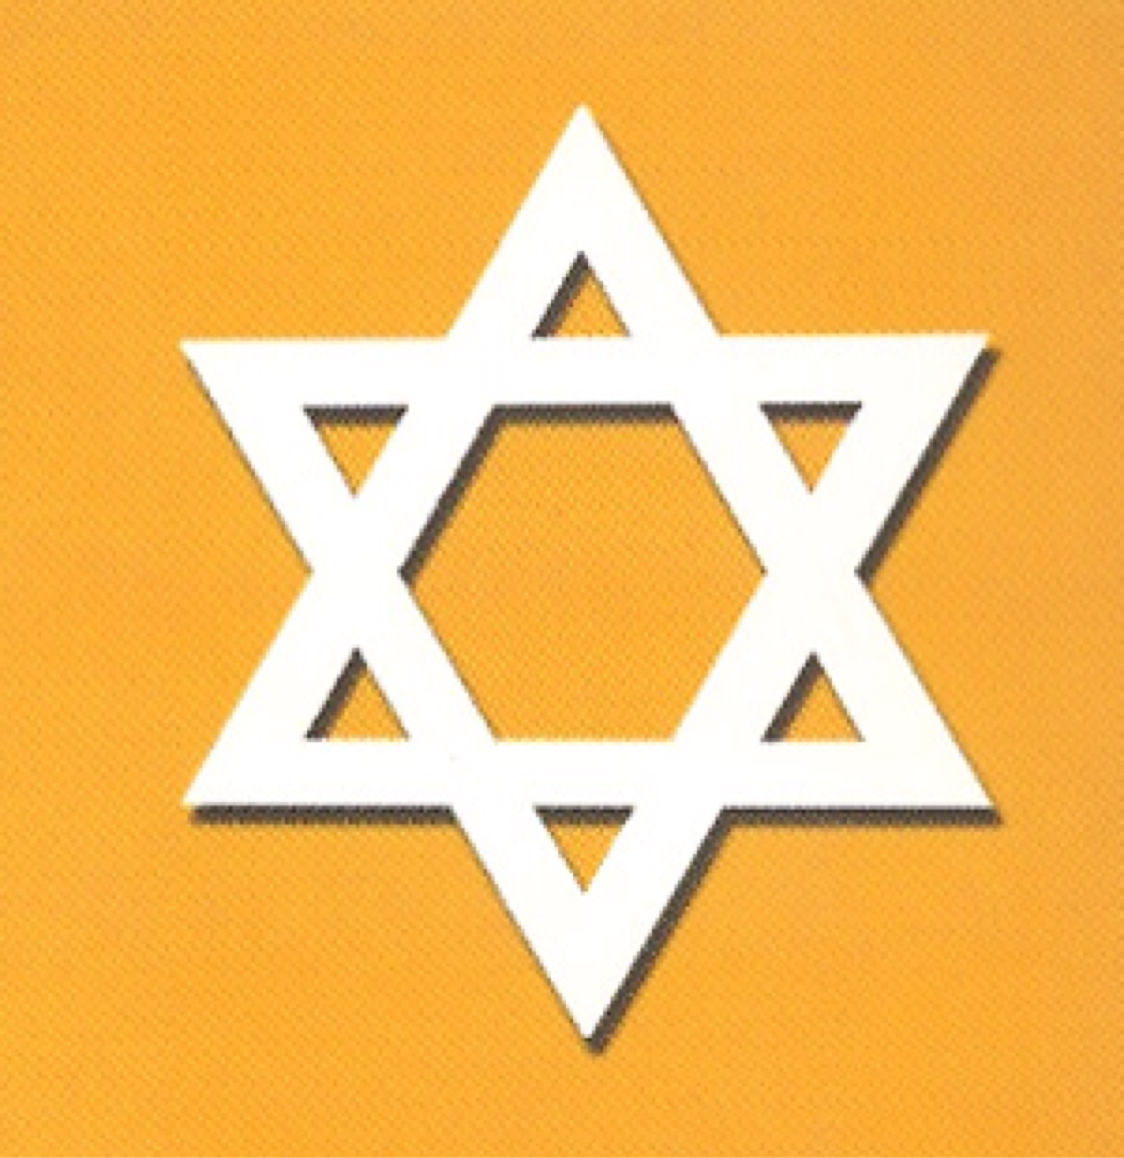 Religious symbols of judaism images symbol and sign ideas world religions by jalen judkins buycottarizona biocorpaavc